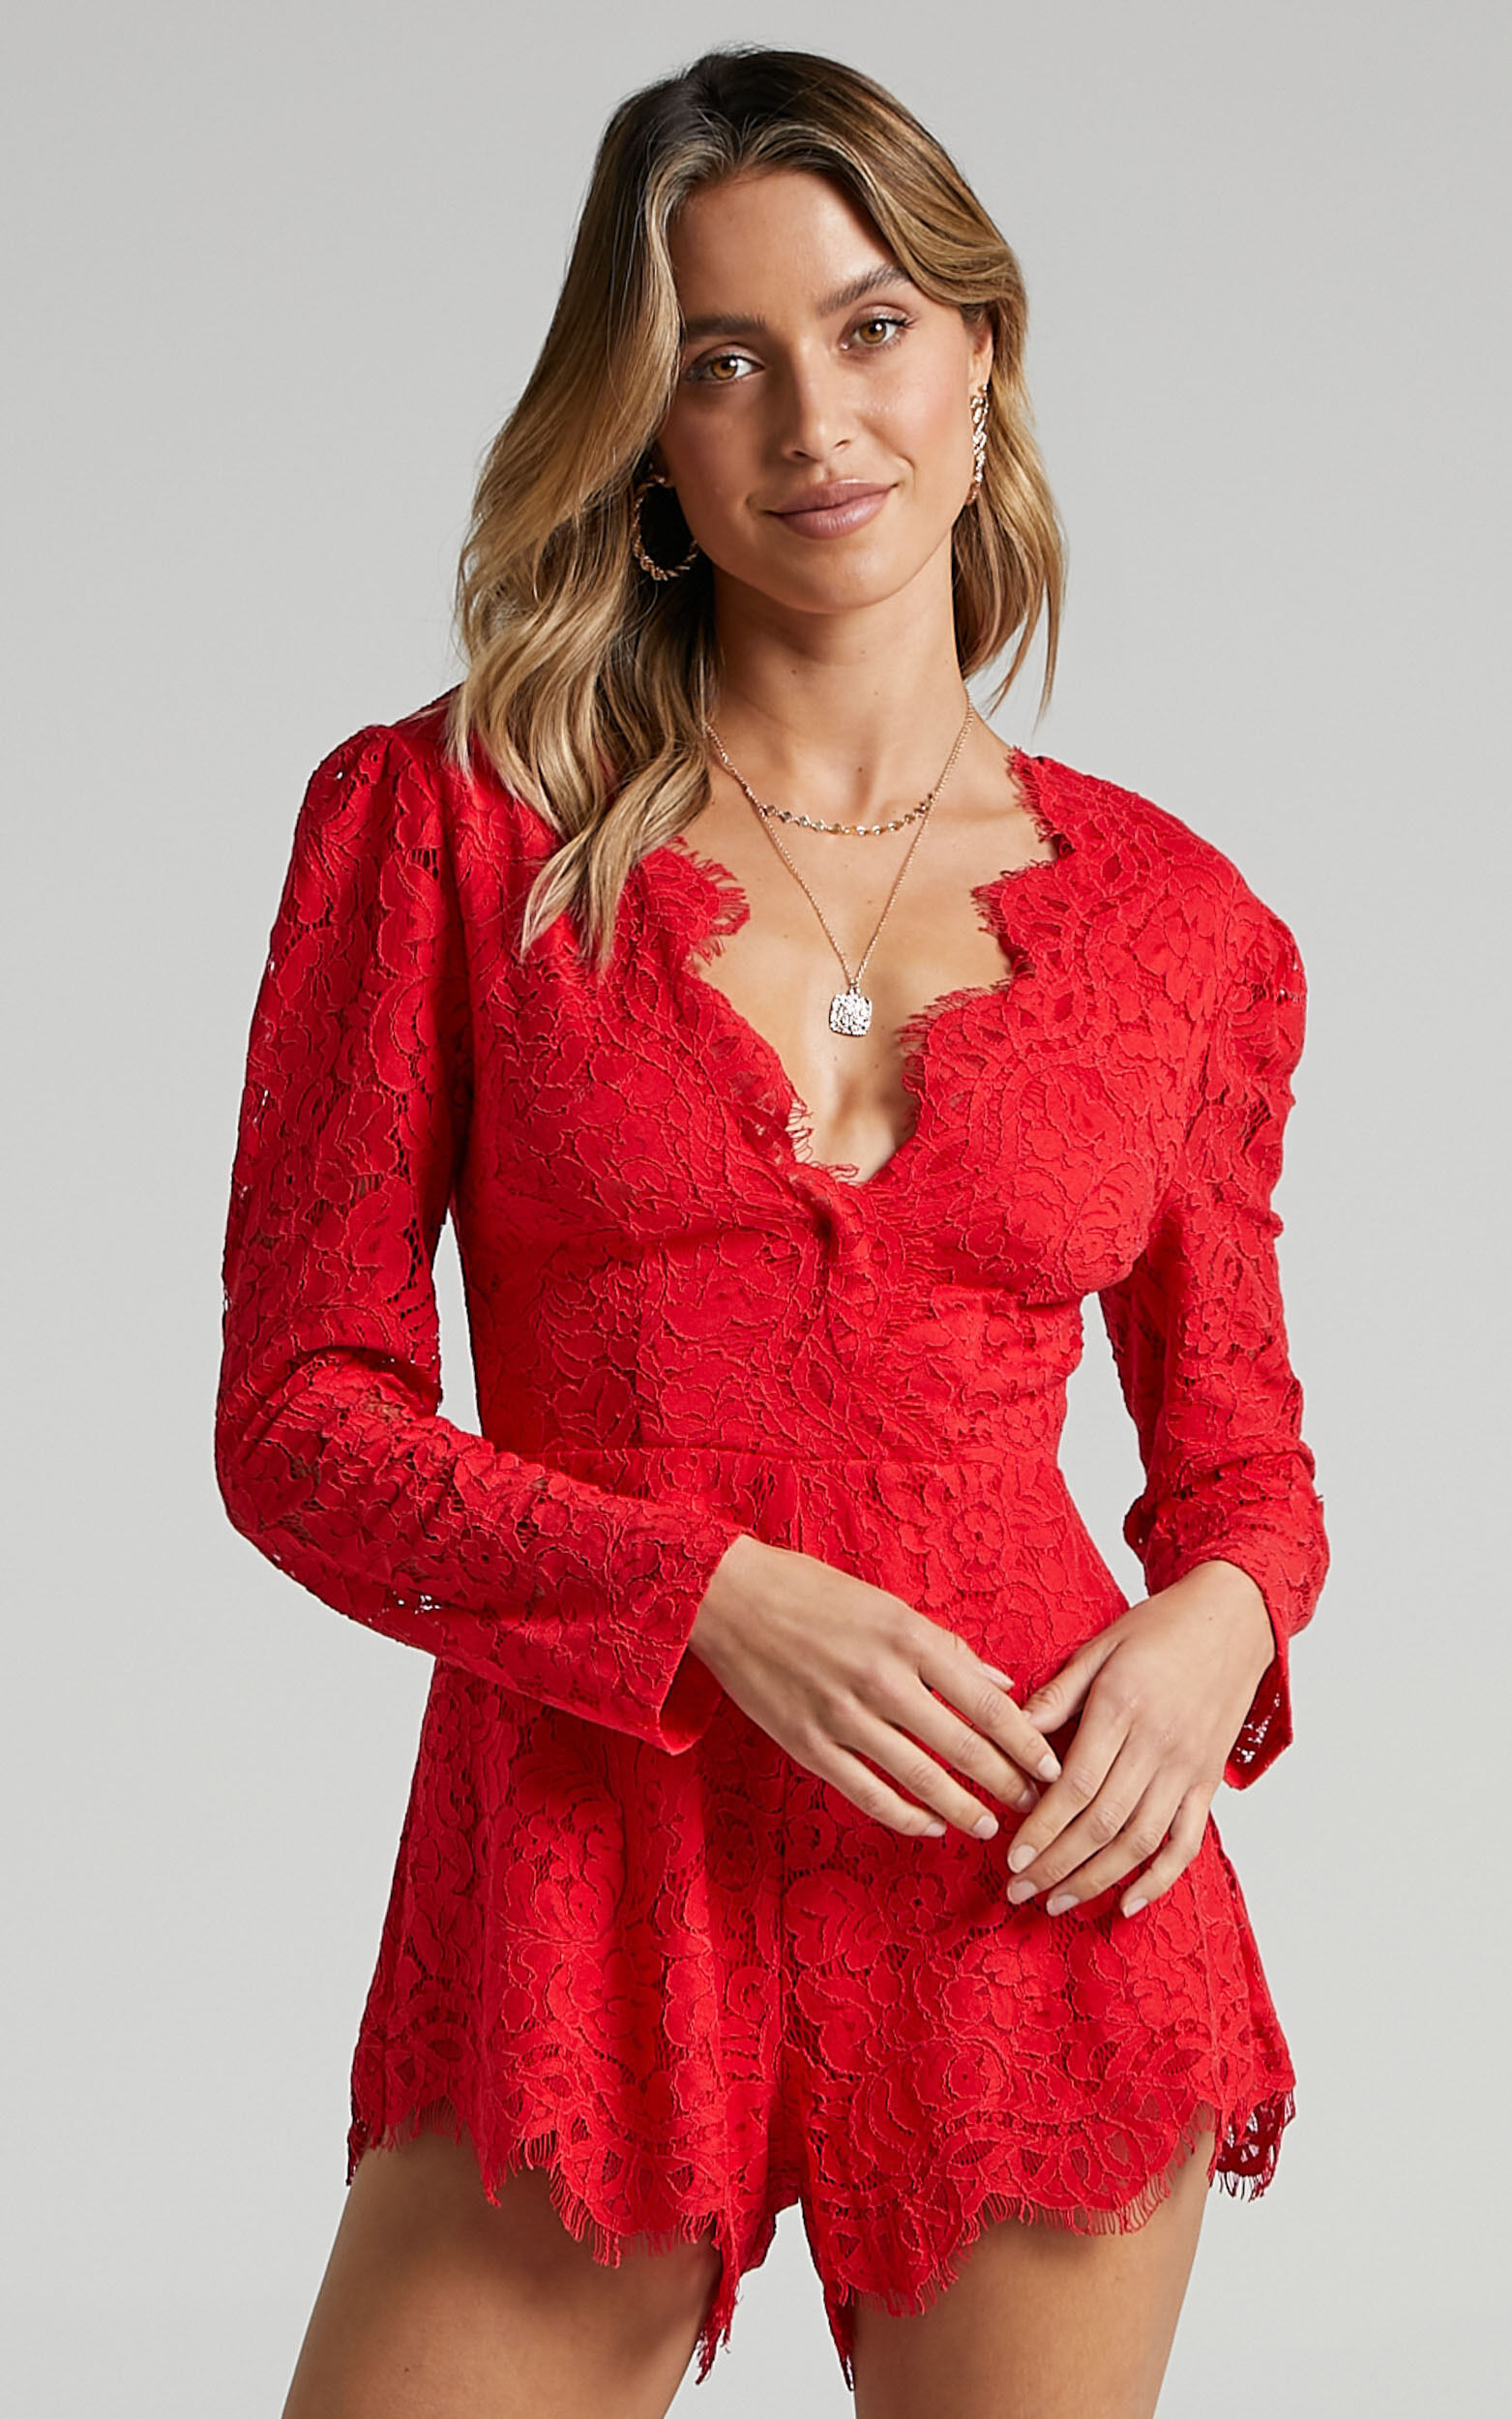 Felt Good Playsuit in Red Lace - 06, RED2, super-hi-res image number null